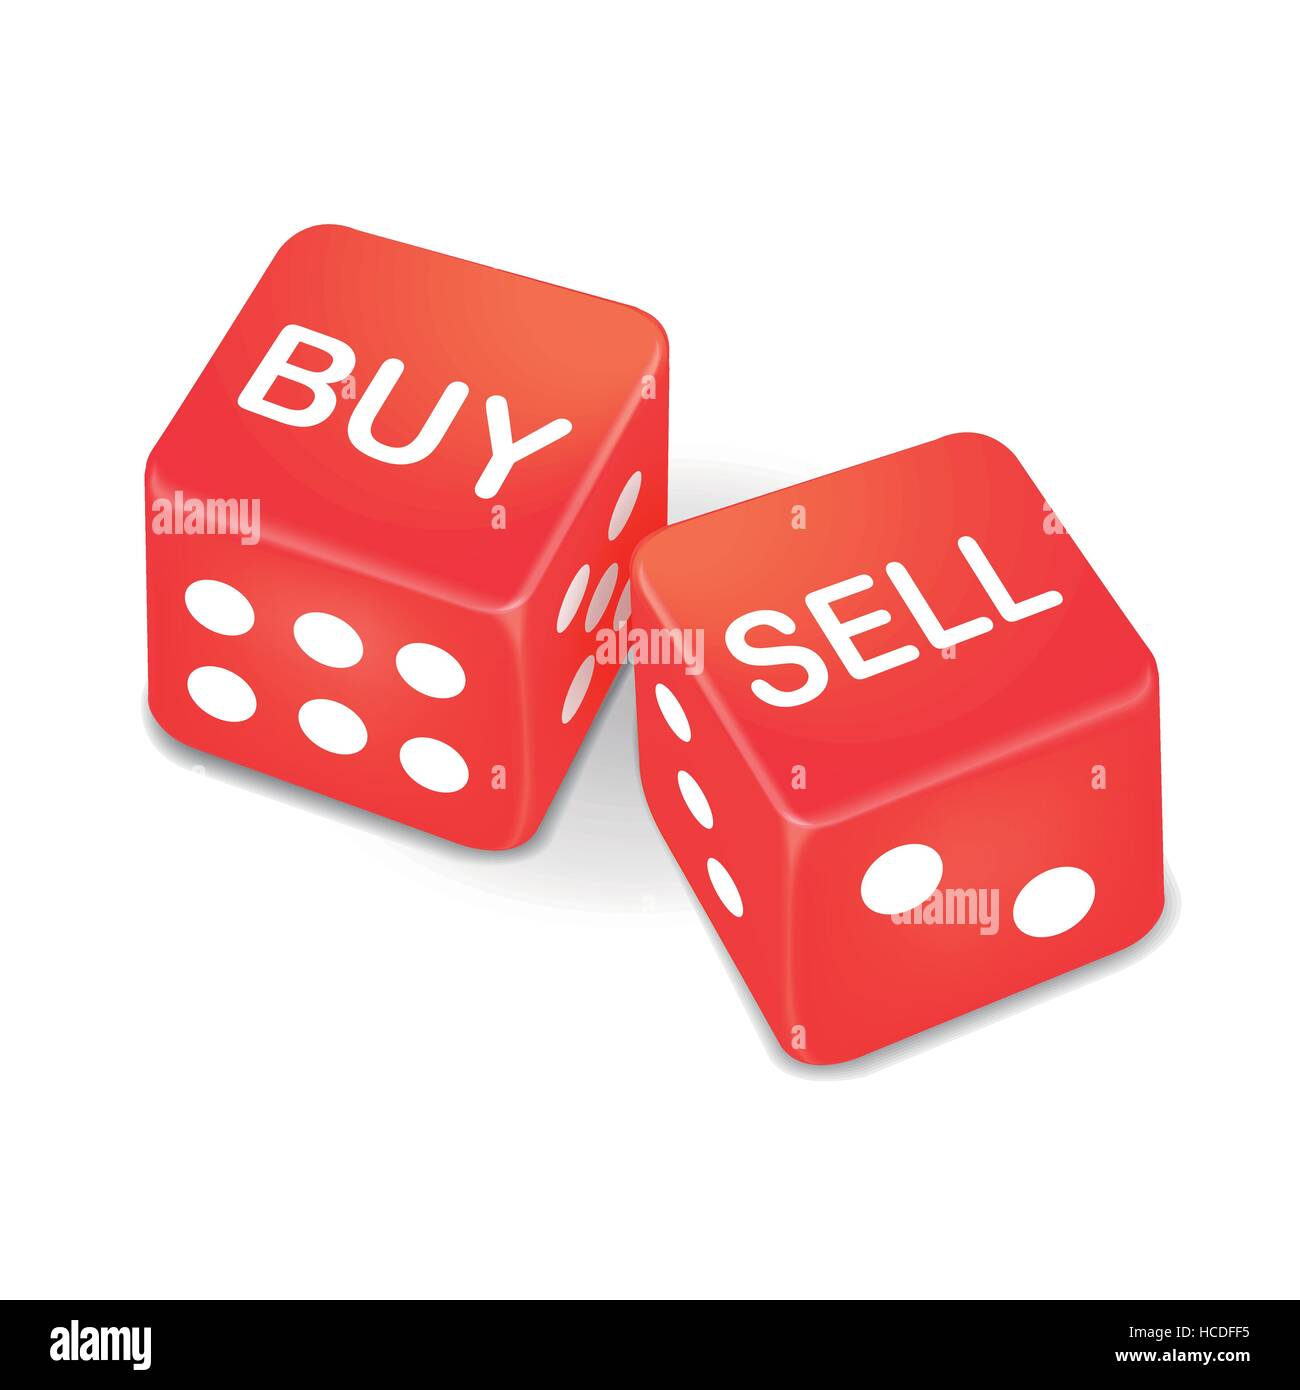 buy and sell words on two red dice isolated on white background - Stock Image